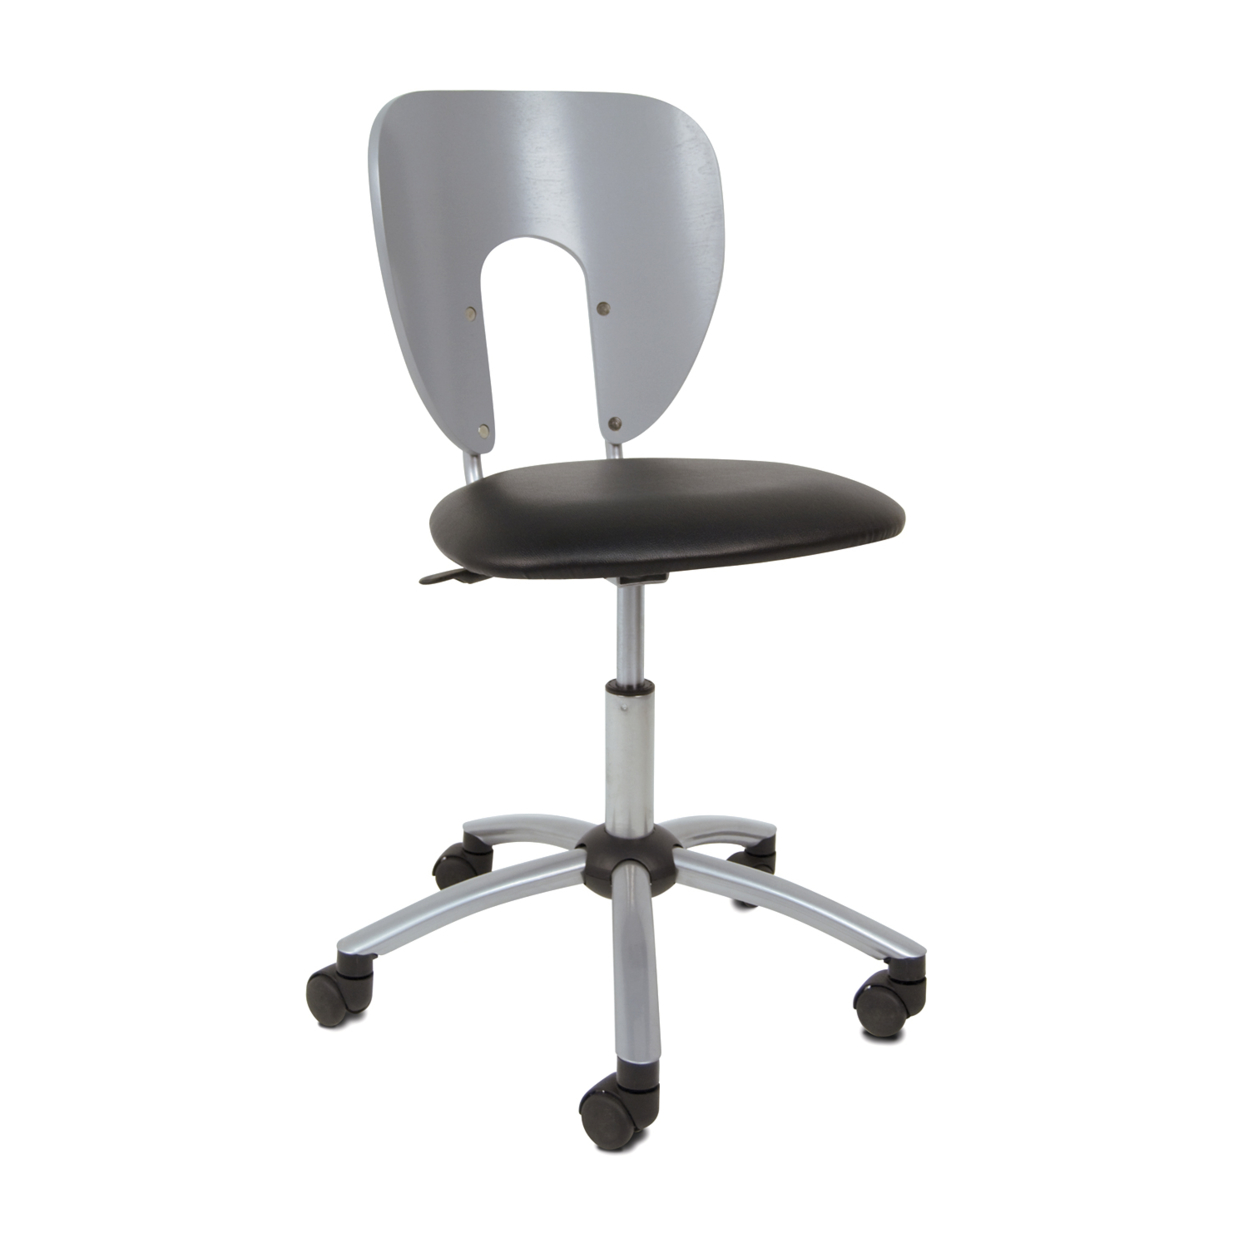 Offex Home Office Futura Chair - Silver